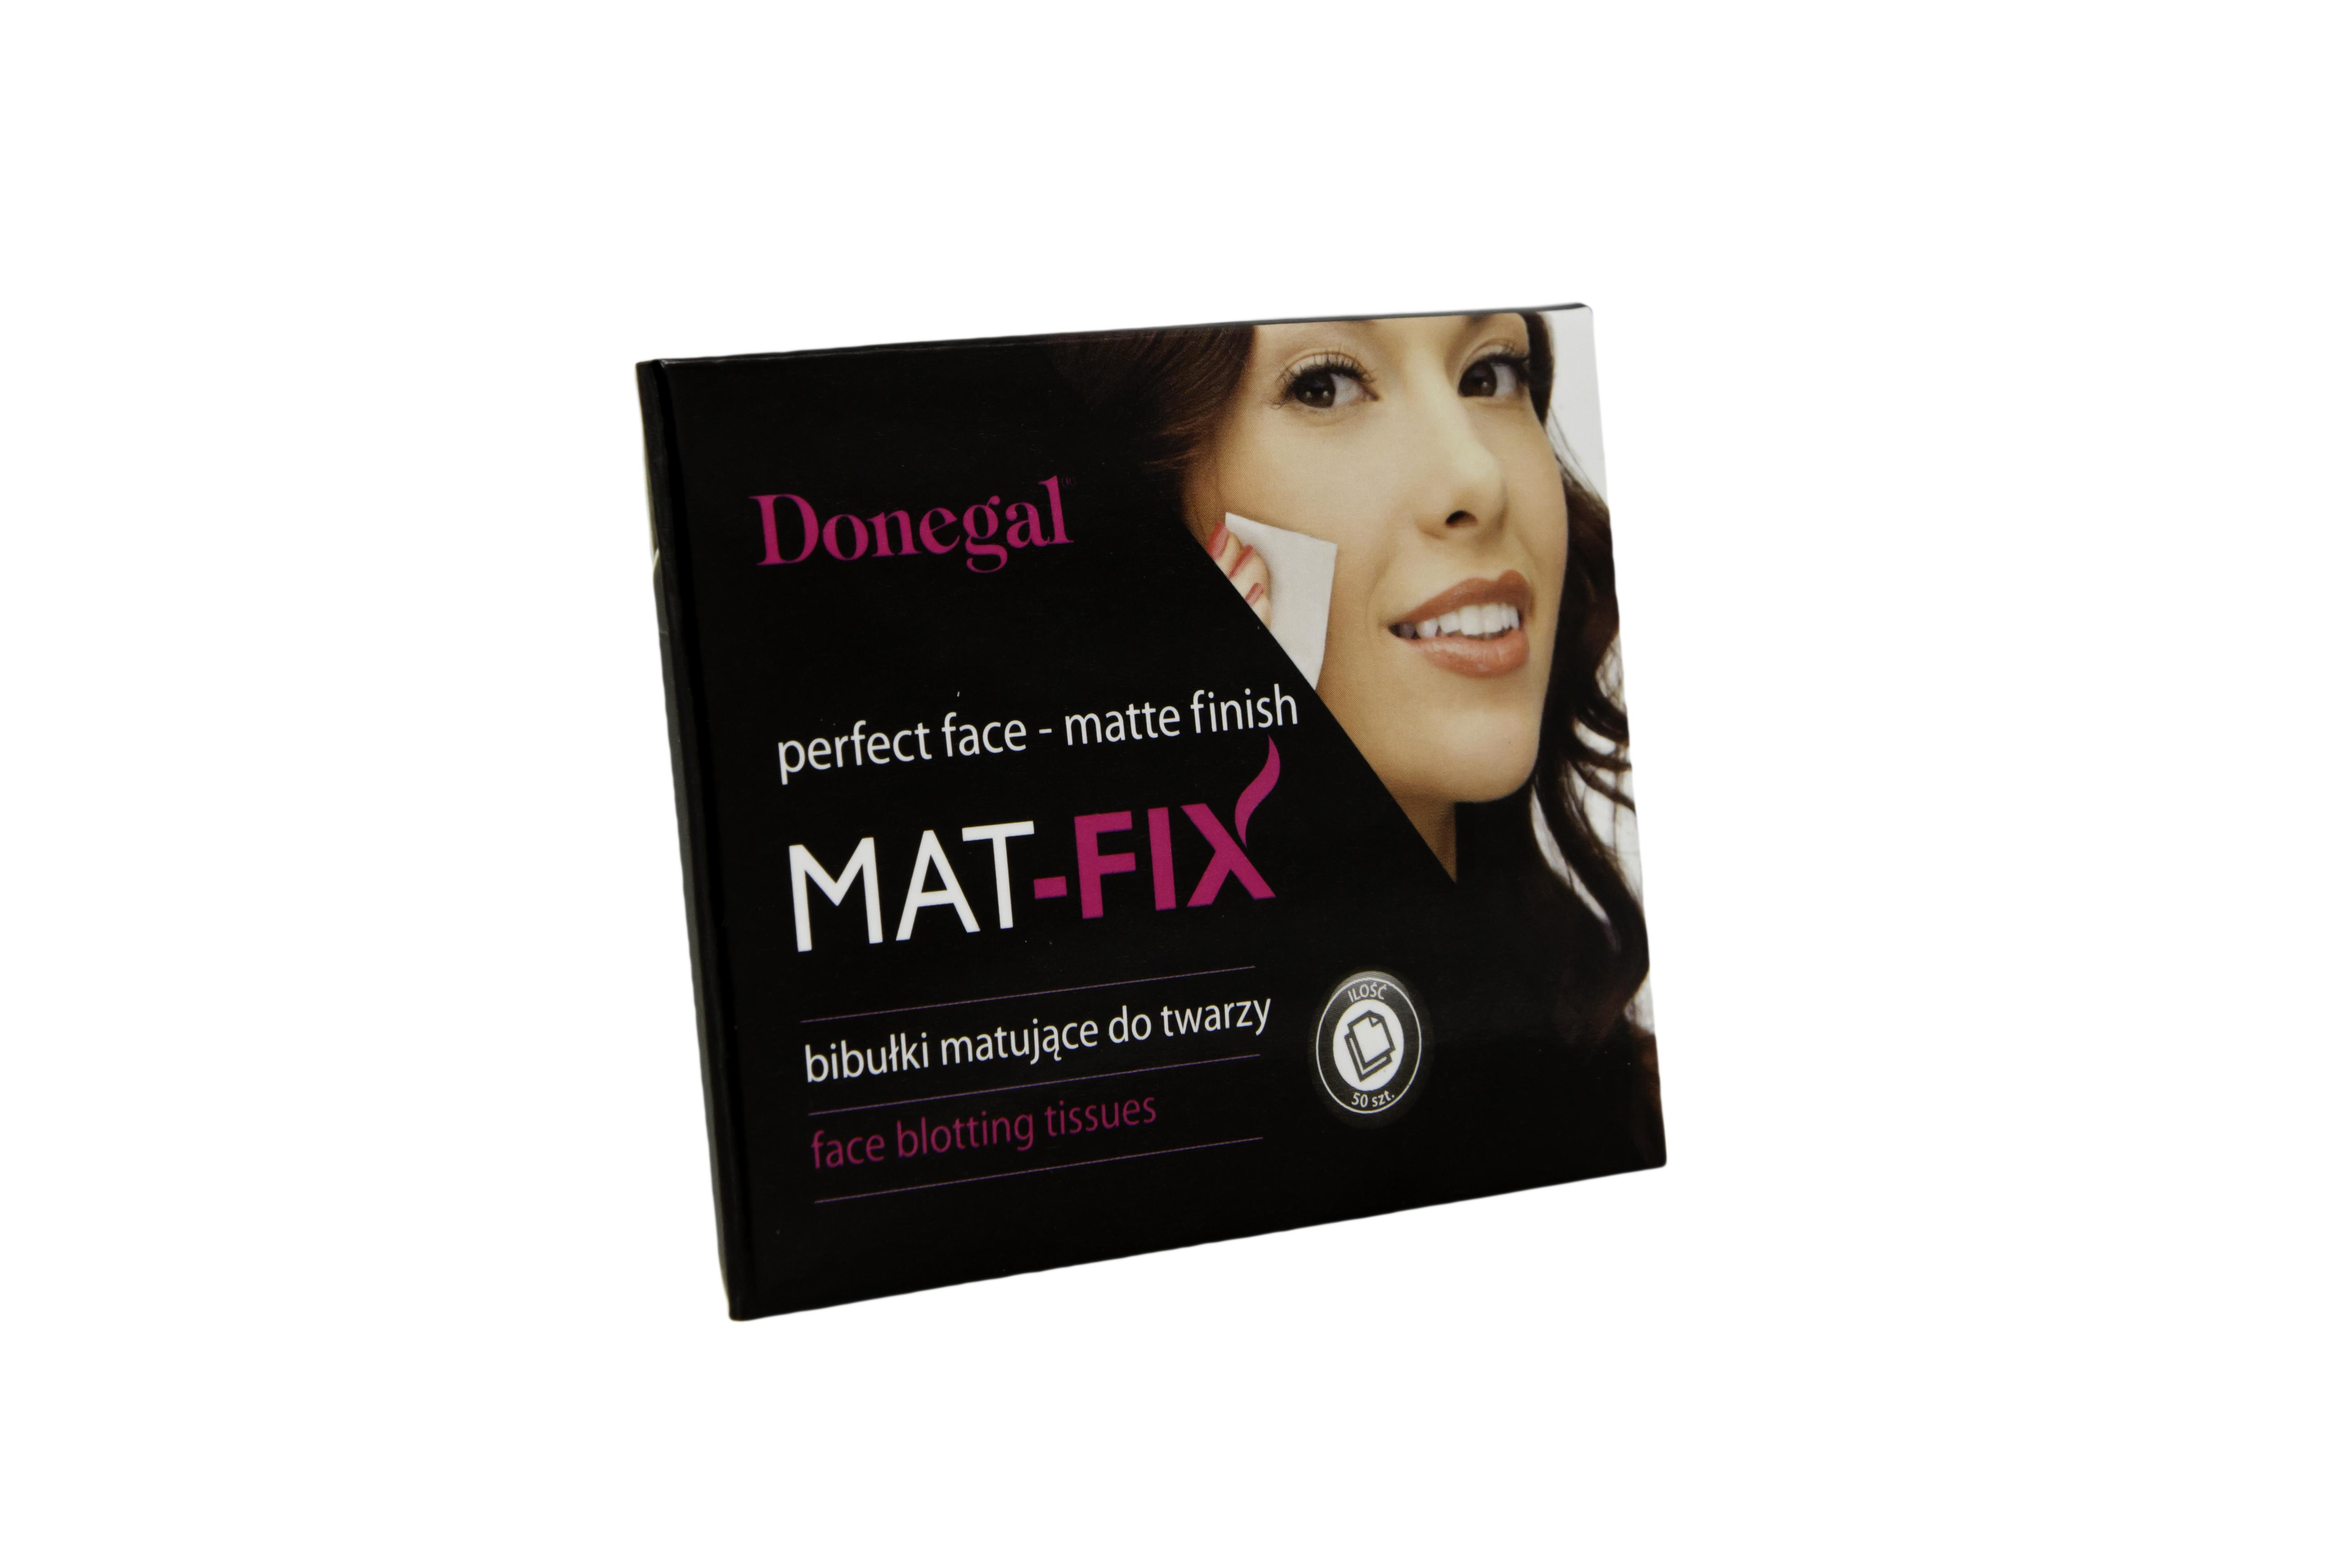 MAT-FIX OIL CONTROL